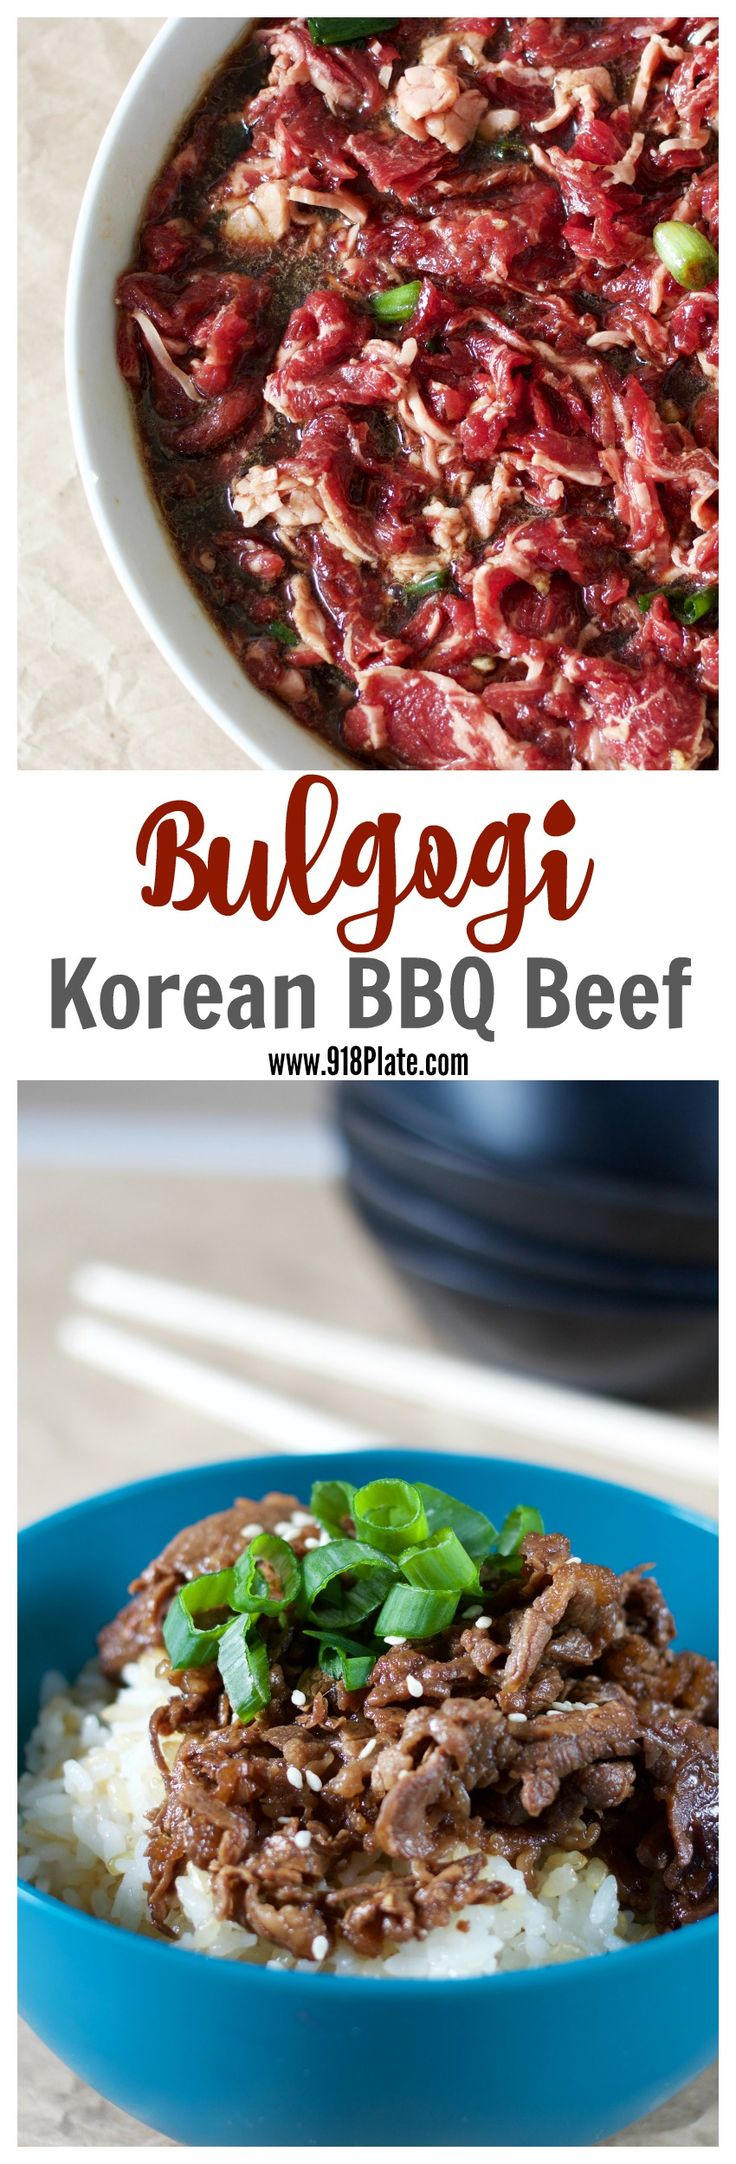 Korean BBQ beef is sweet, fast and easy to make with a 6-ingredient marinade!